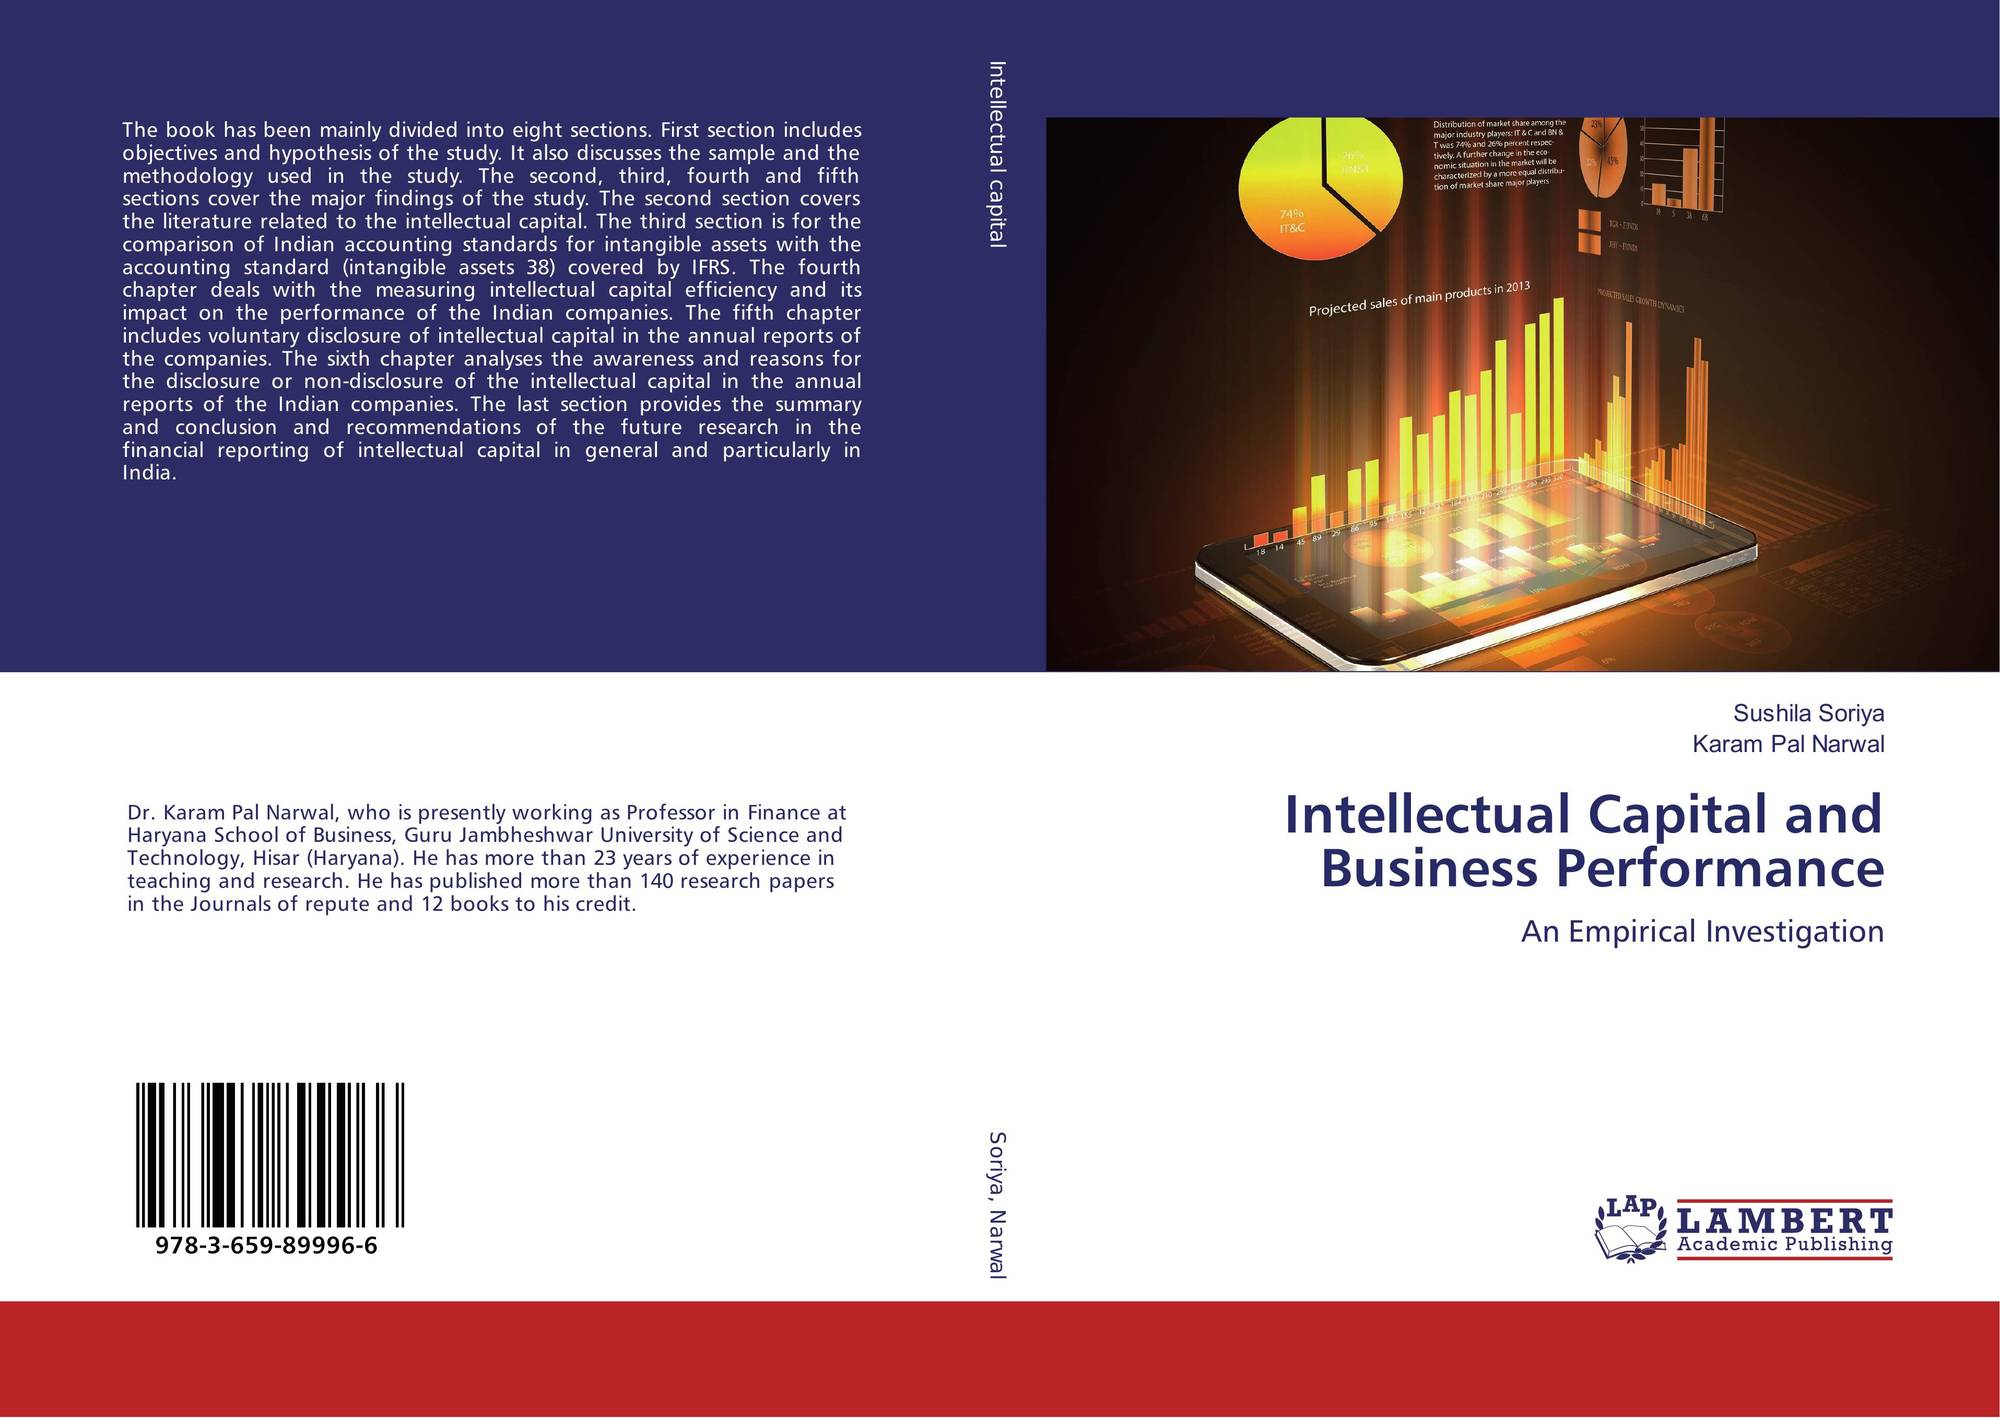 the impact of intellectual capital on The importance of intellectual capital (ic) and the related philosophy of knowledge economy have captured the attention of researchers and business enterprises in wto era.